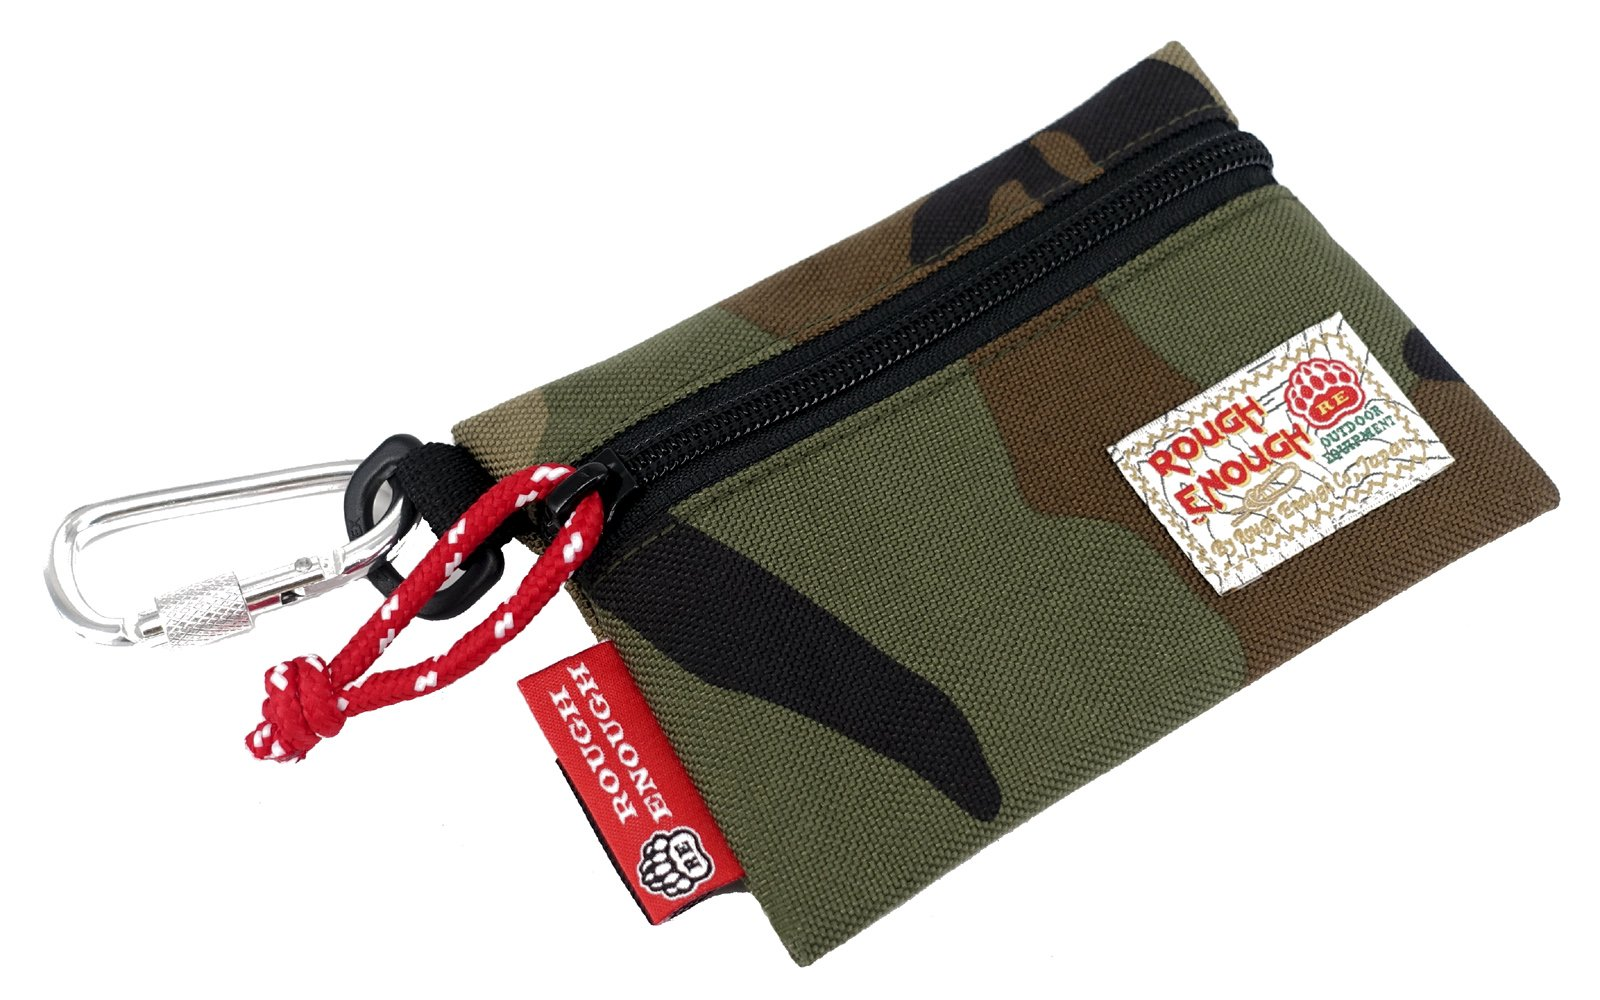 Rough Enough Durable 1000D Cordura Flat Card Pouch Wallet Change Cash Coin Bag Purse With YKK Zipper And Fasten Buckles Perfect Size To Hold Many Small Little Stuffs ,Accessories For Kids (Camo)